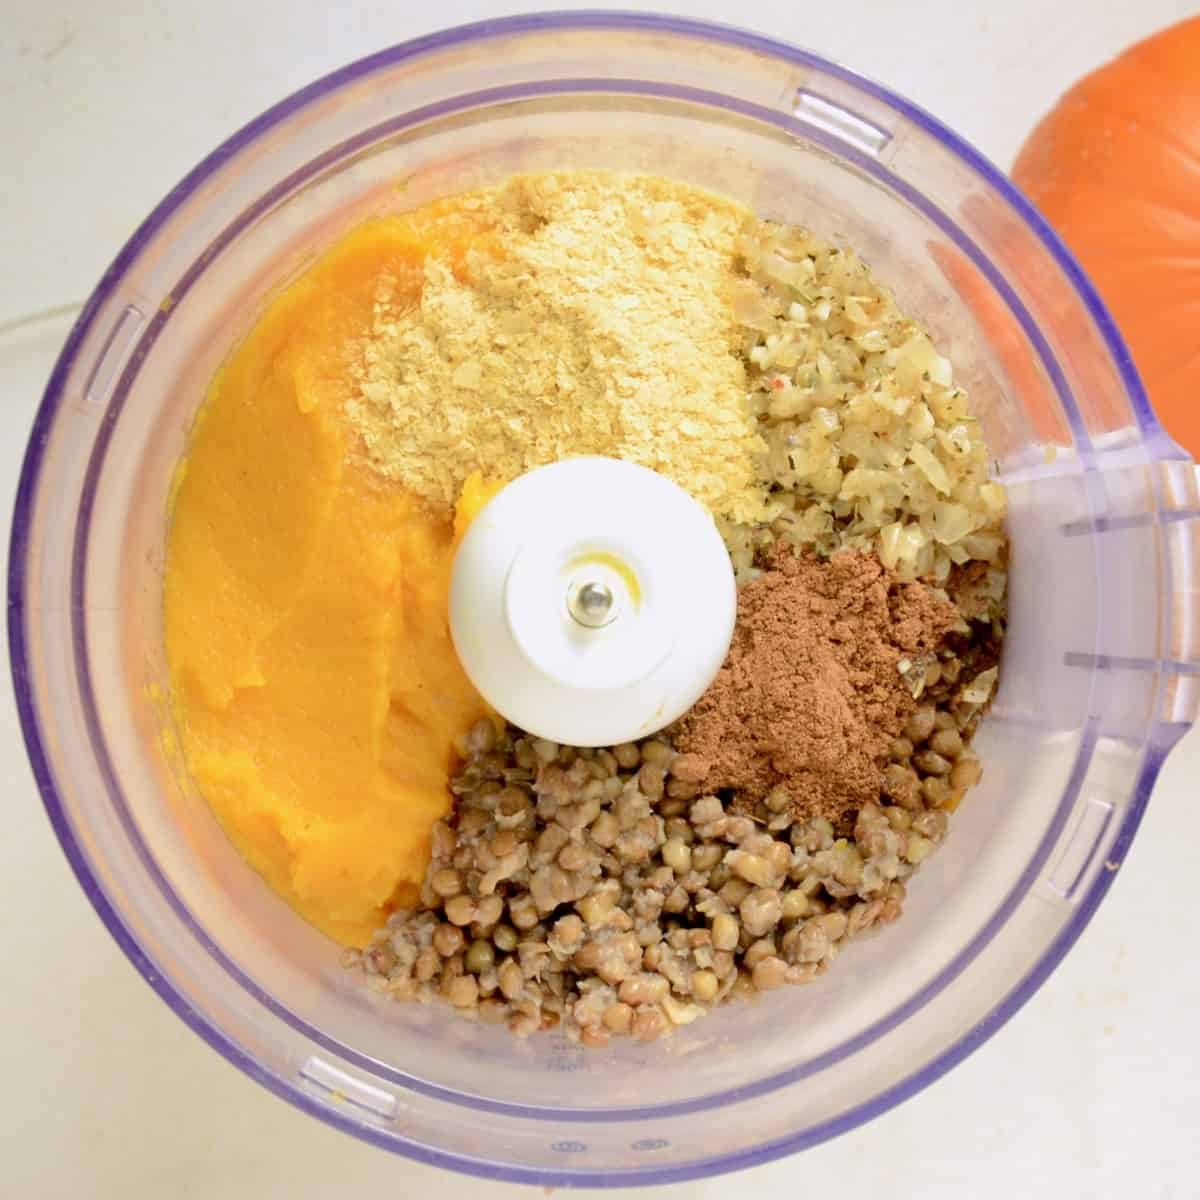 All the ingredients for the dip in a food processor.